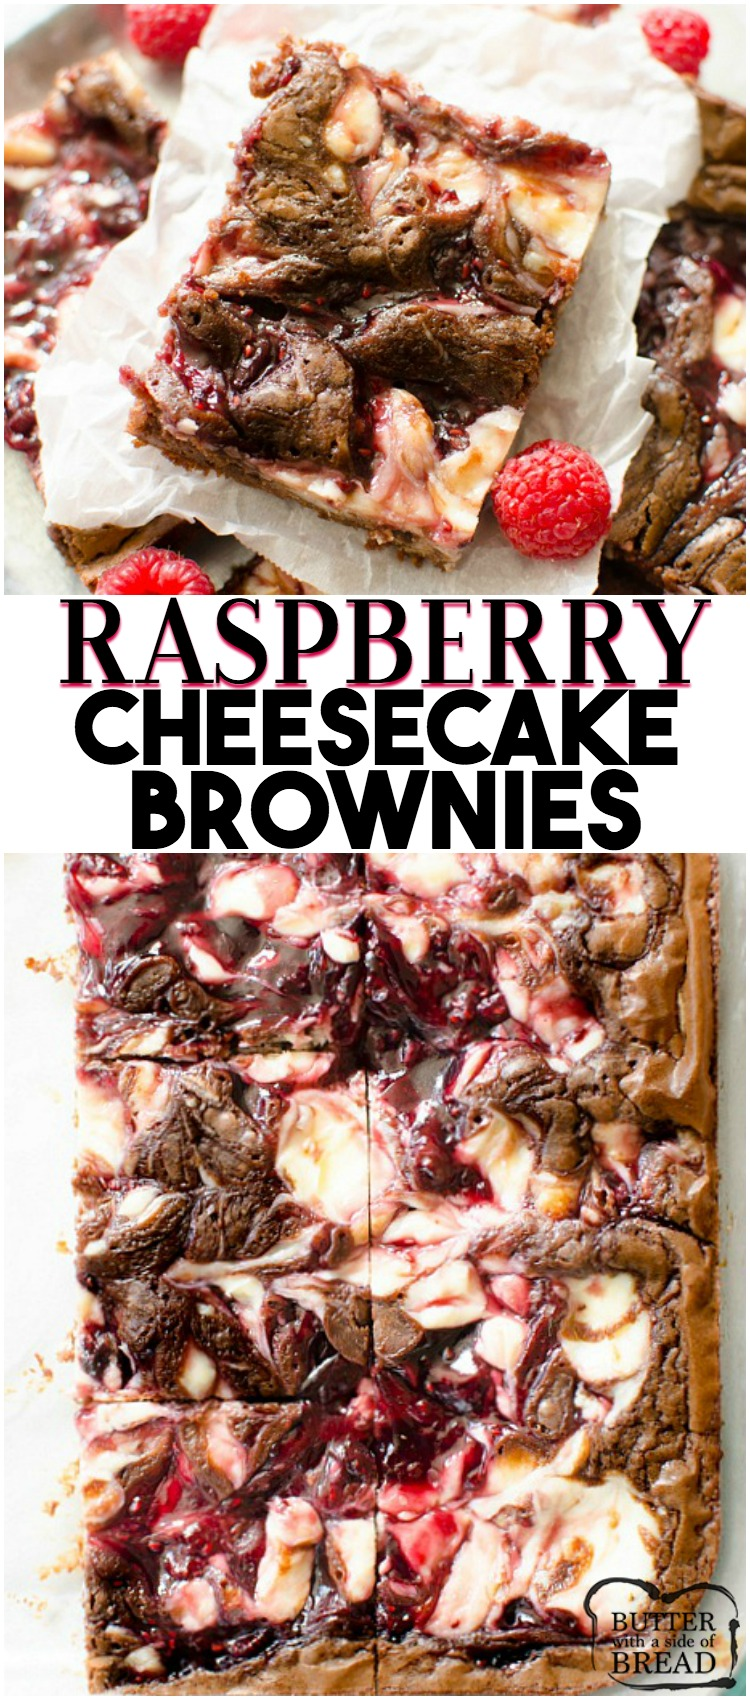 Raspberry Cheesecake Brownies are decedent 5 ingredient brownies with a raspberry cheesecake swirl. Quick & easy raspberry cheesecake brownie recipe that looks and tastes incredible! #brownies #cheesecake #raspberry #dessert #chocolate #baking #recipe from BUTTER WITH A SIDE OF BREAD